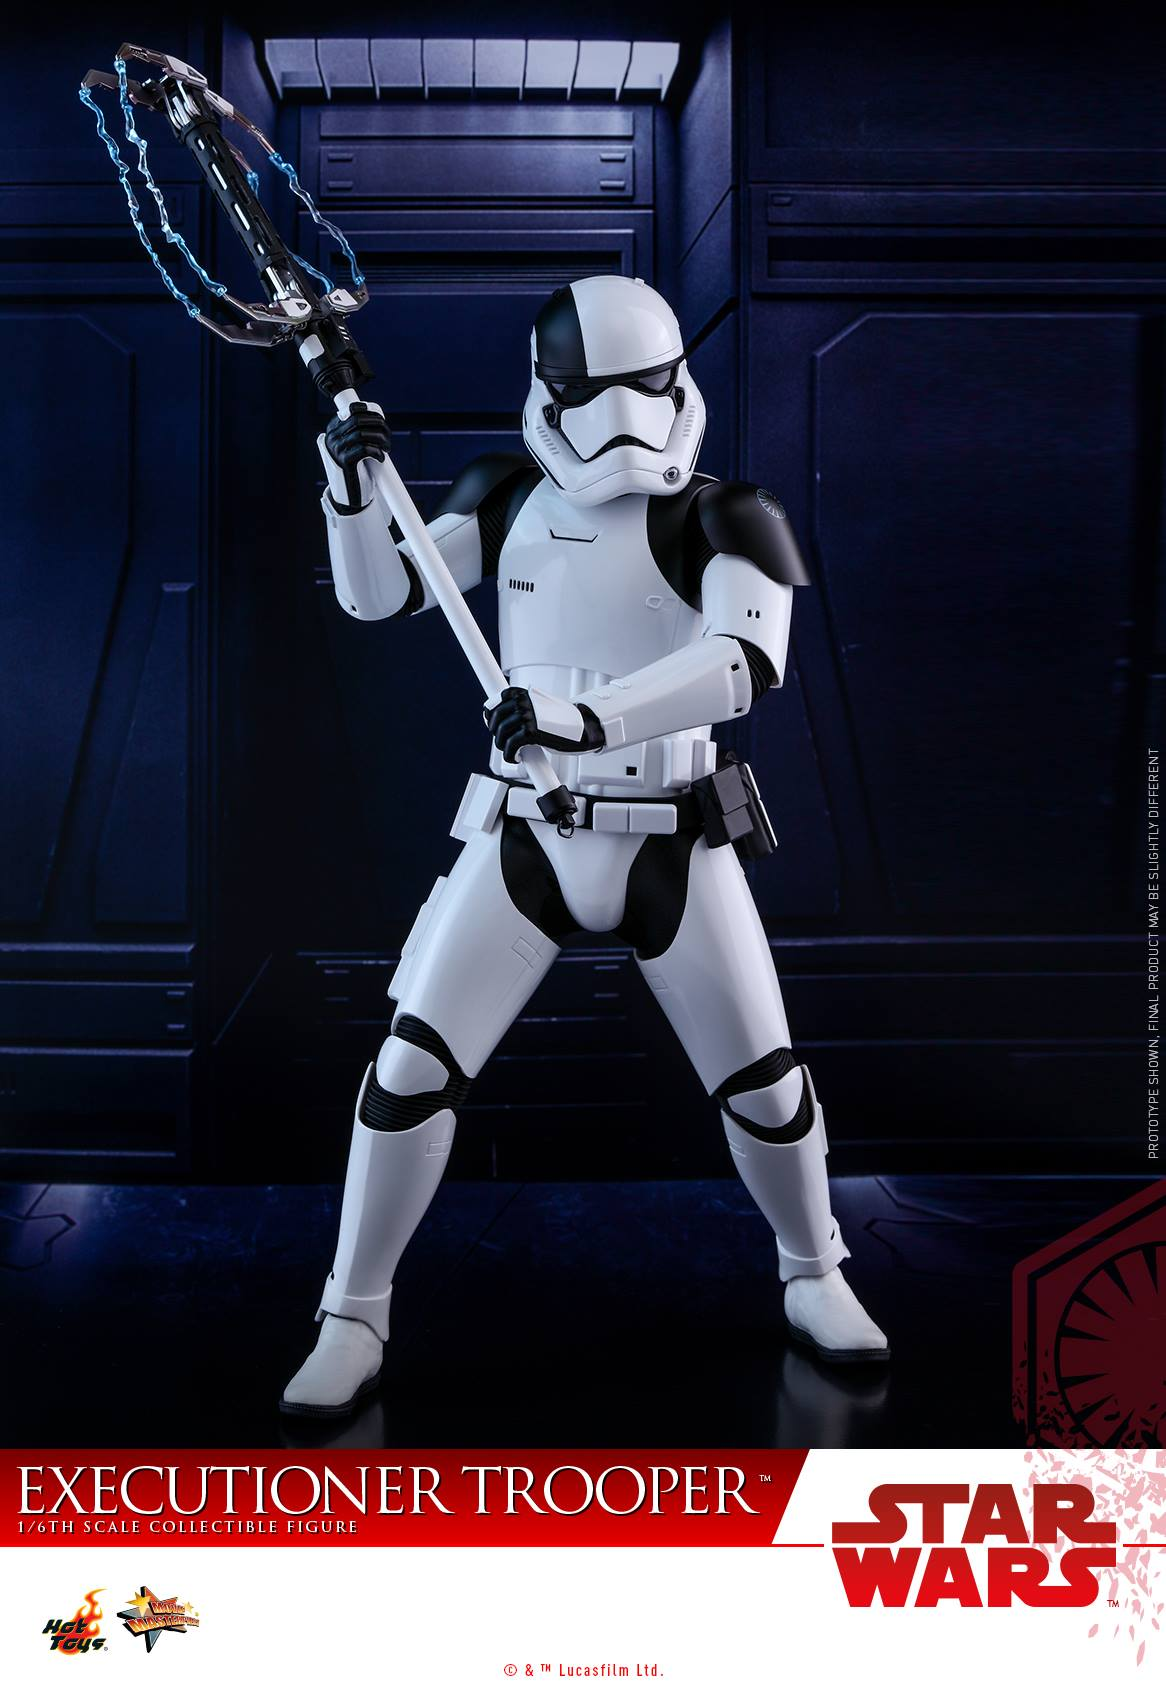 SW - The Last Jedi 1/6th scale Executioner Trooper